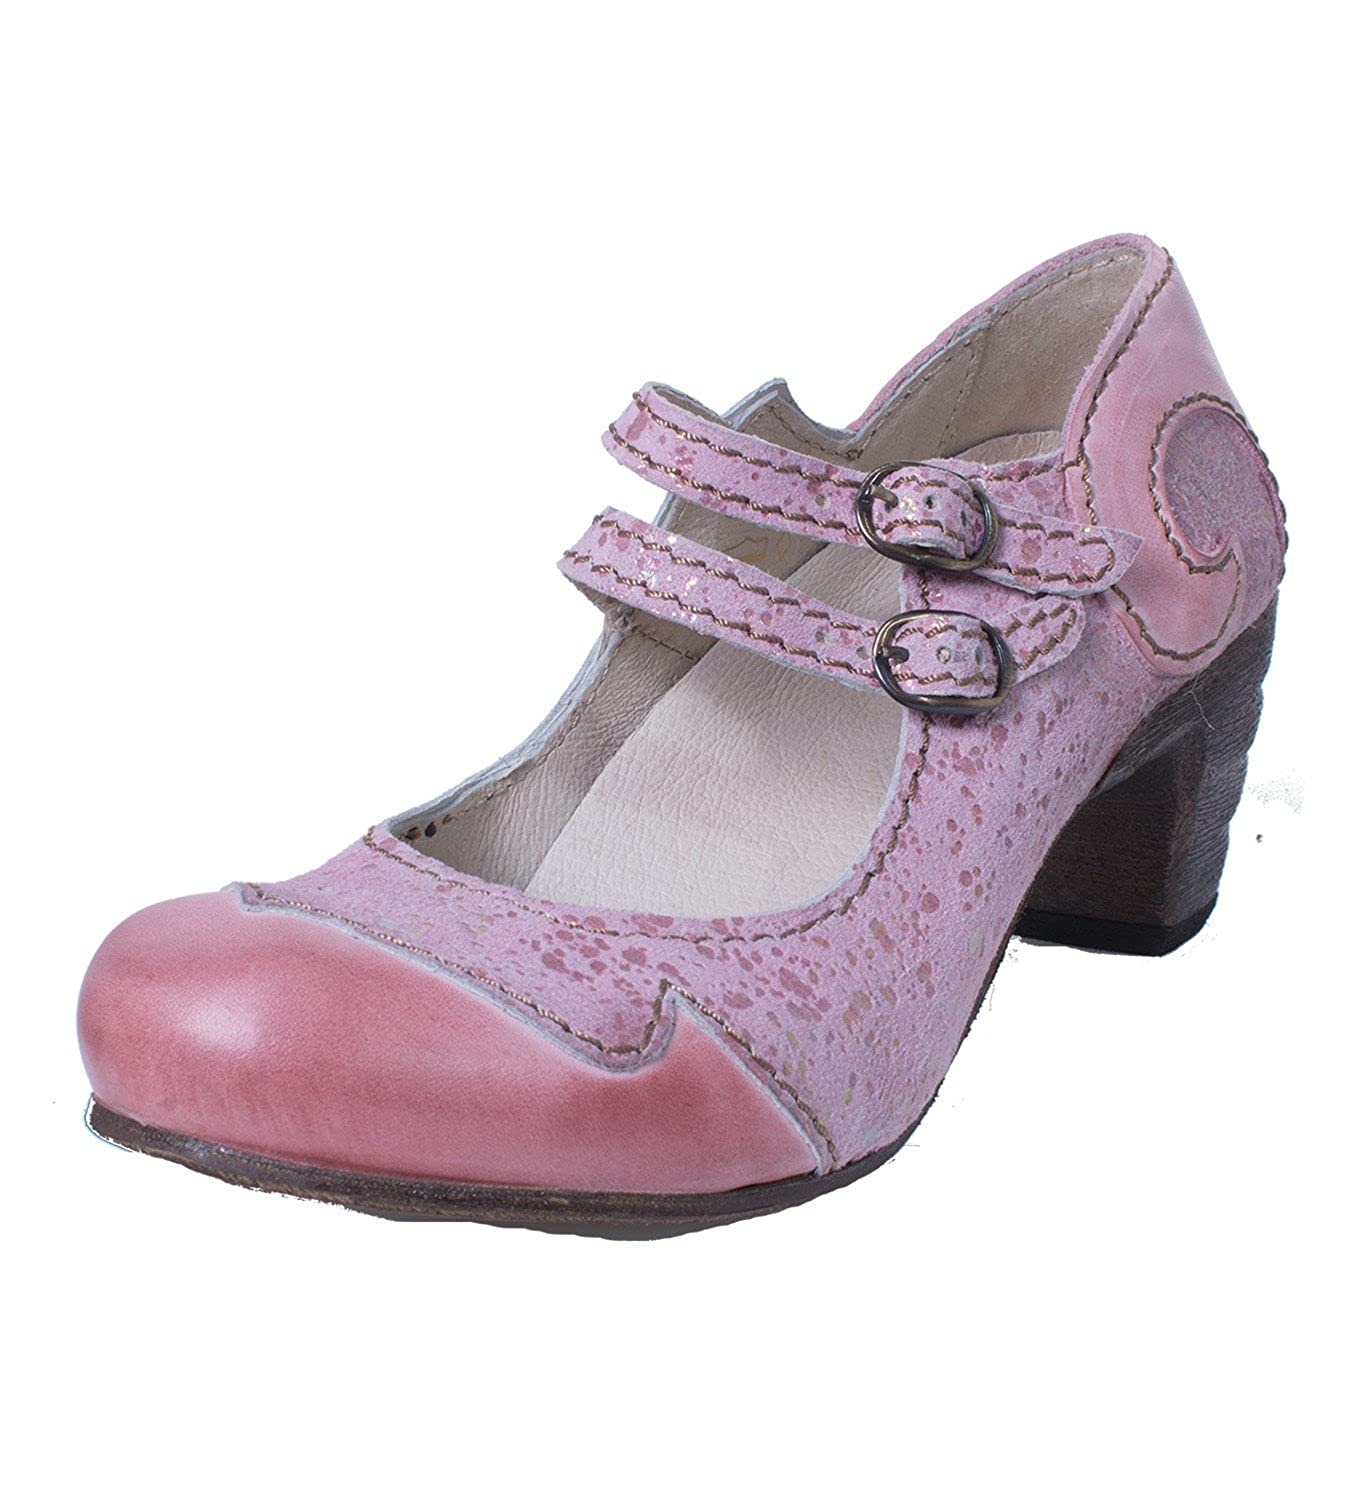 Rovers Pumps 51001 Crust Costa lila Märchenhafte Sommer Pumps Rovers in Rosa 8adb62